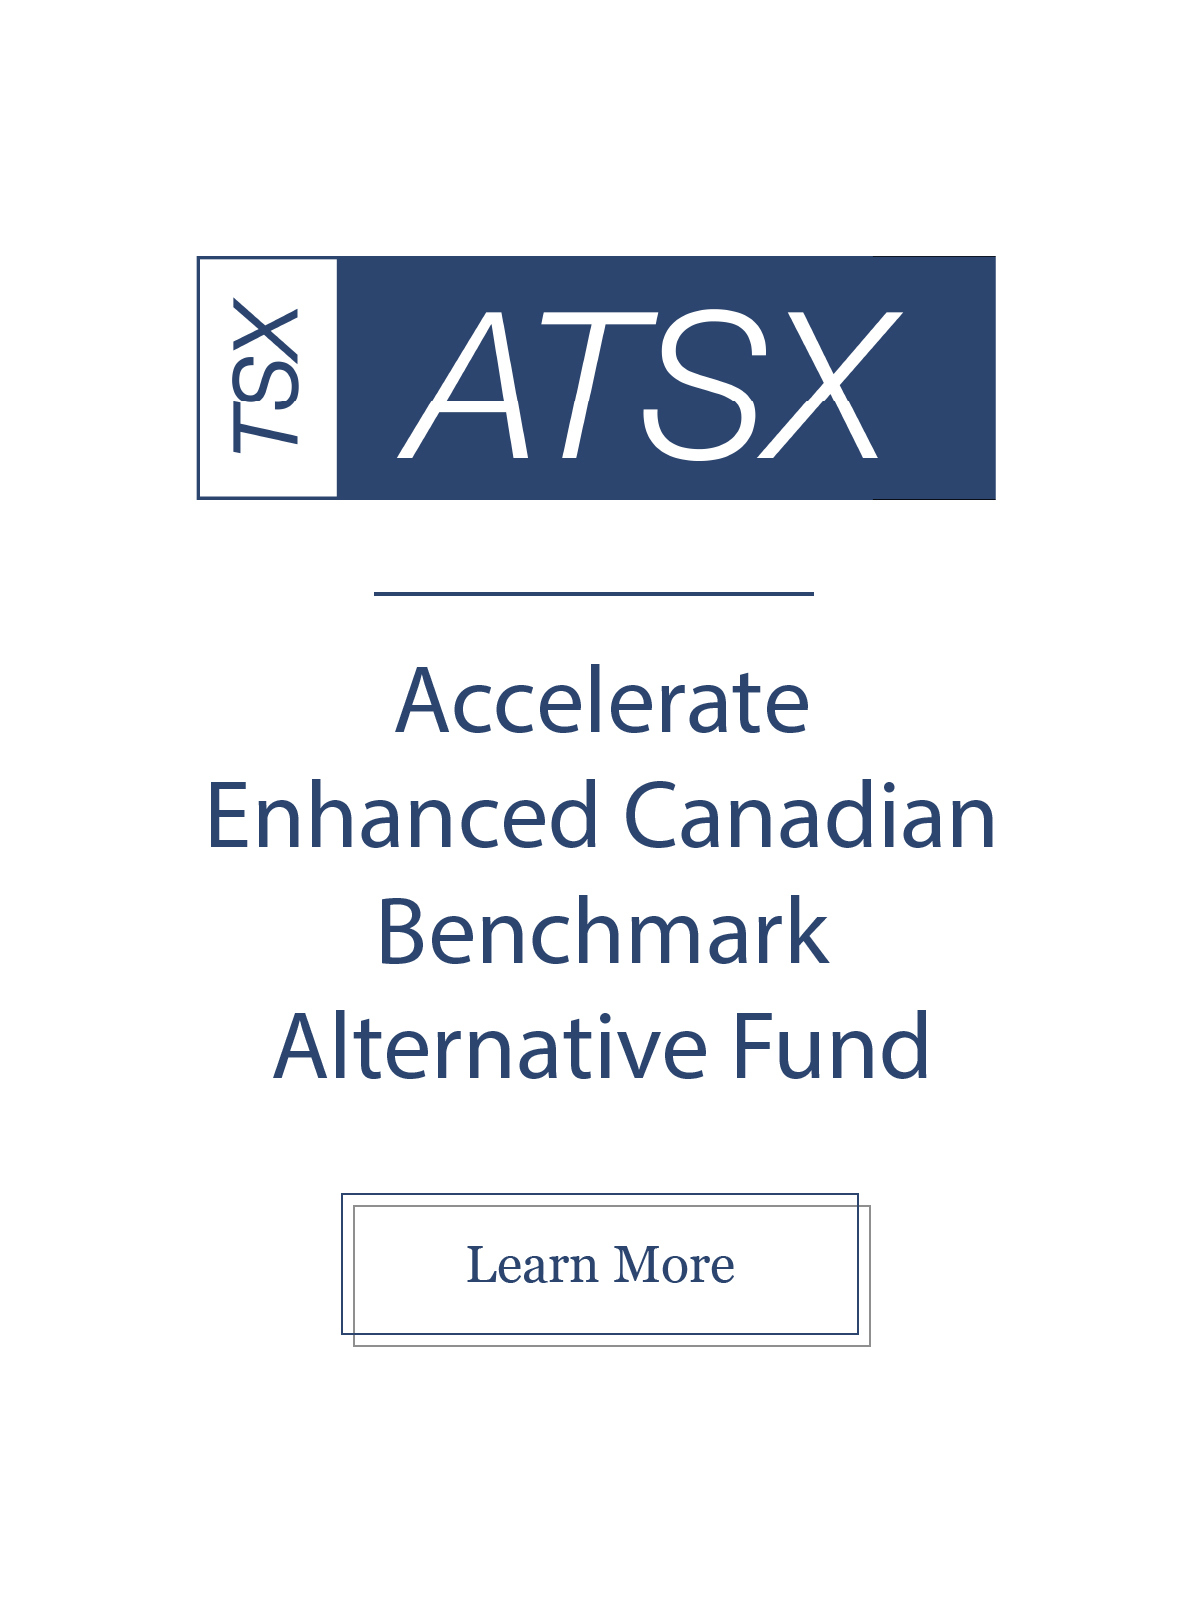 ATSX,TSX ATSX,ATSX Accelerate,Accelerate funds,Accelerate Fund,Accelerate Enhanced Canadian Benchmark Alternative Fund,ATSX Alternative Fund,Accelerate Enhanced Canadian Fund,TSX ATSX,